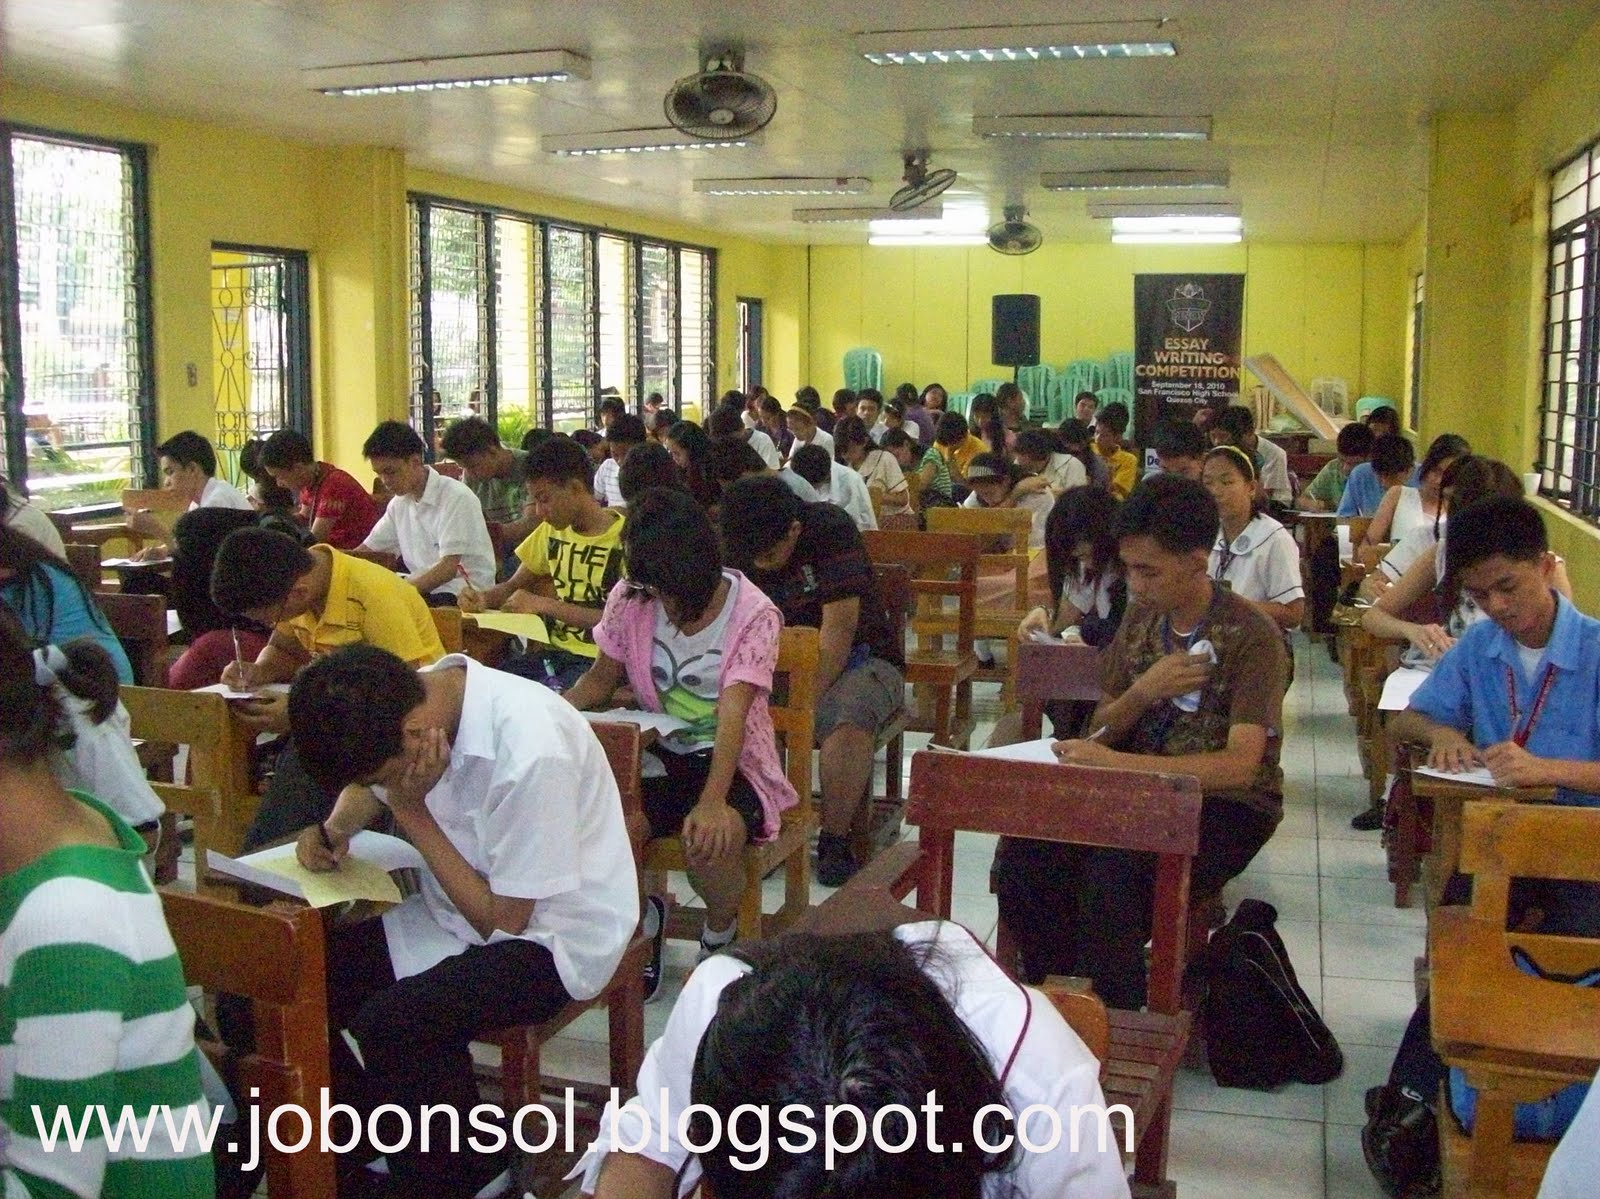 event greenwich holds essay writing competition in deped qc the said essay writing competition started assembly at 7am in the social hall of san francisco high school in coordination quezon city secondary school